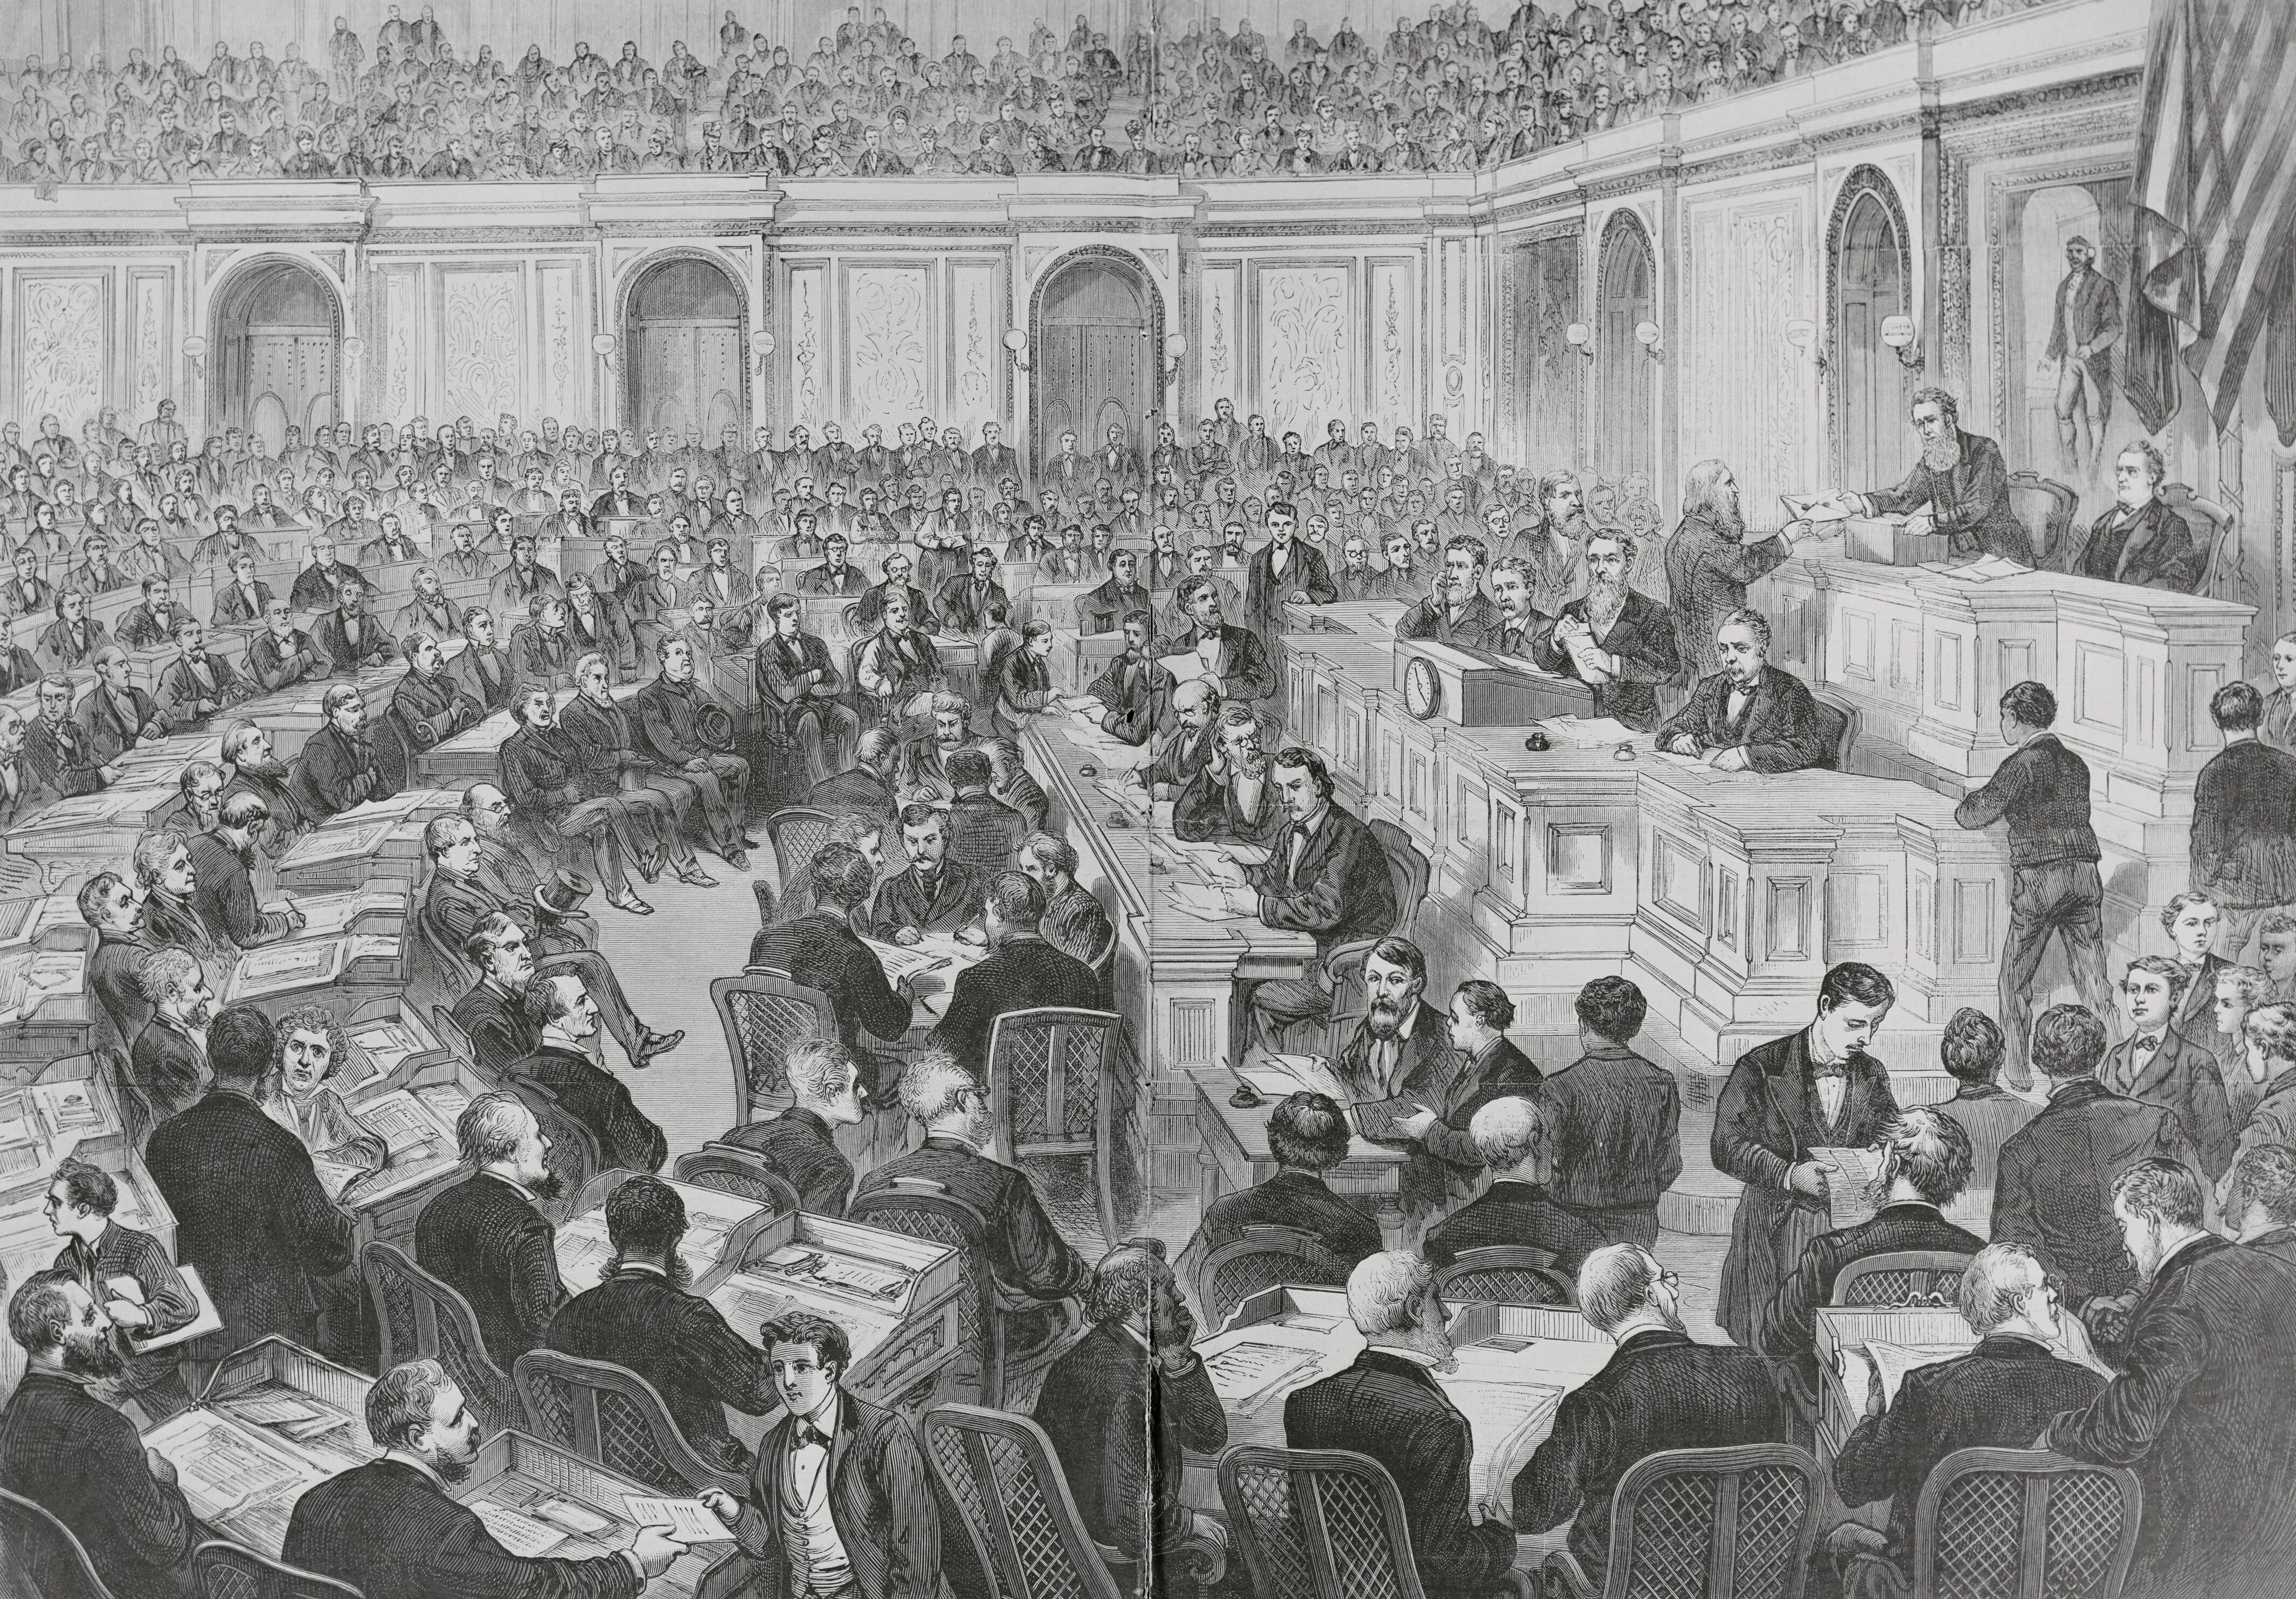 In the controversial presidential election, the outcomes in four states were in dispute, creating a stalemate that took weeks to resolve before a winner was declared.